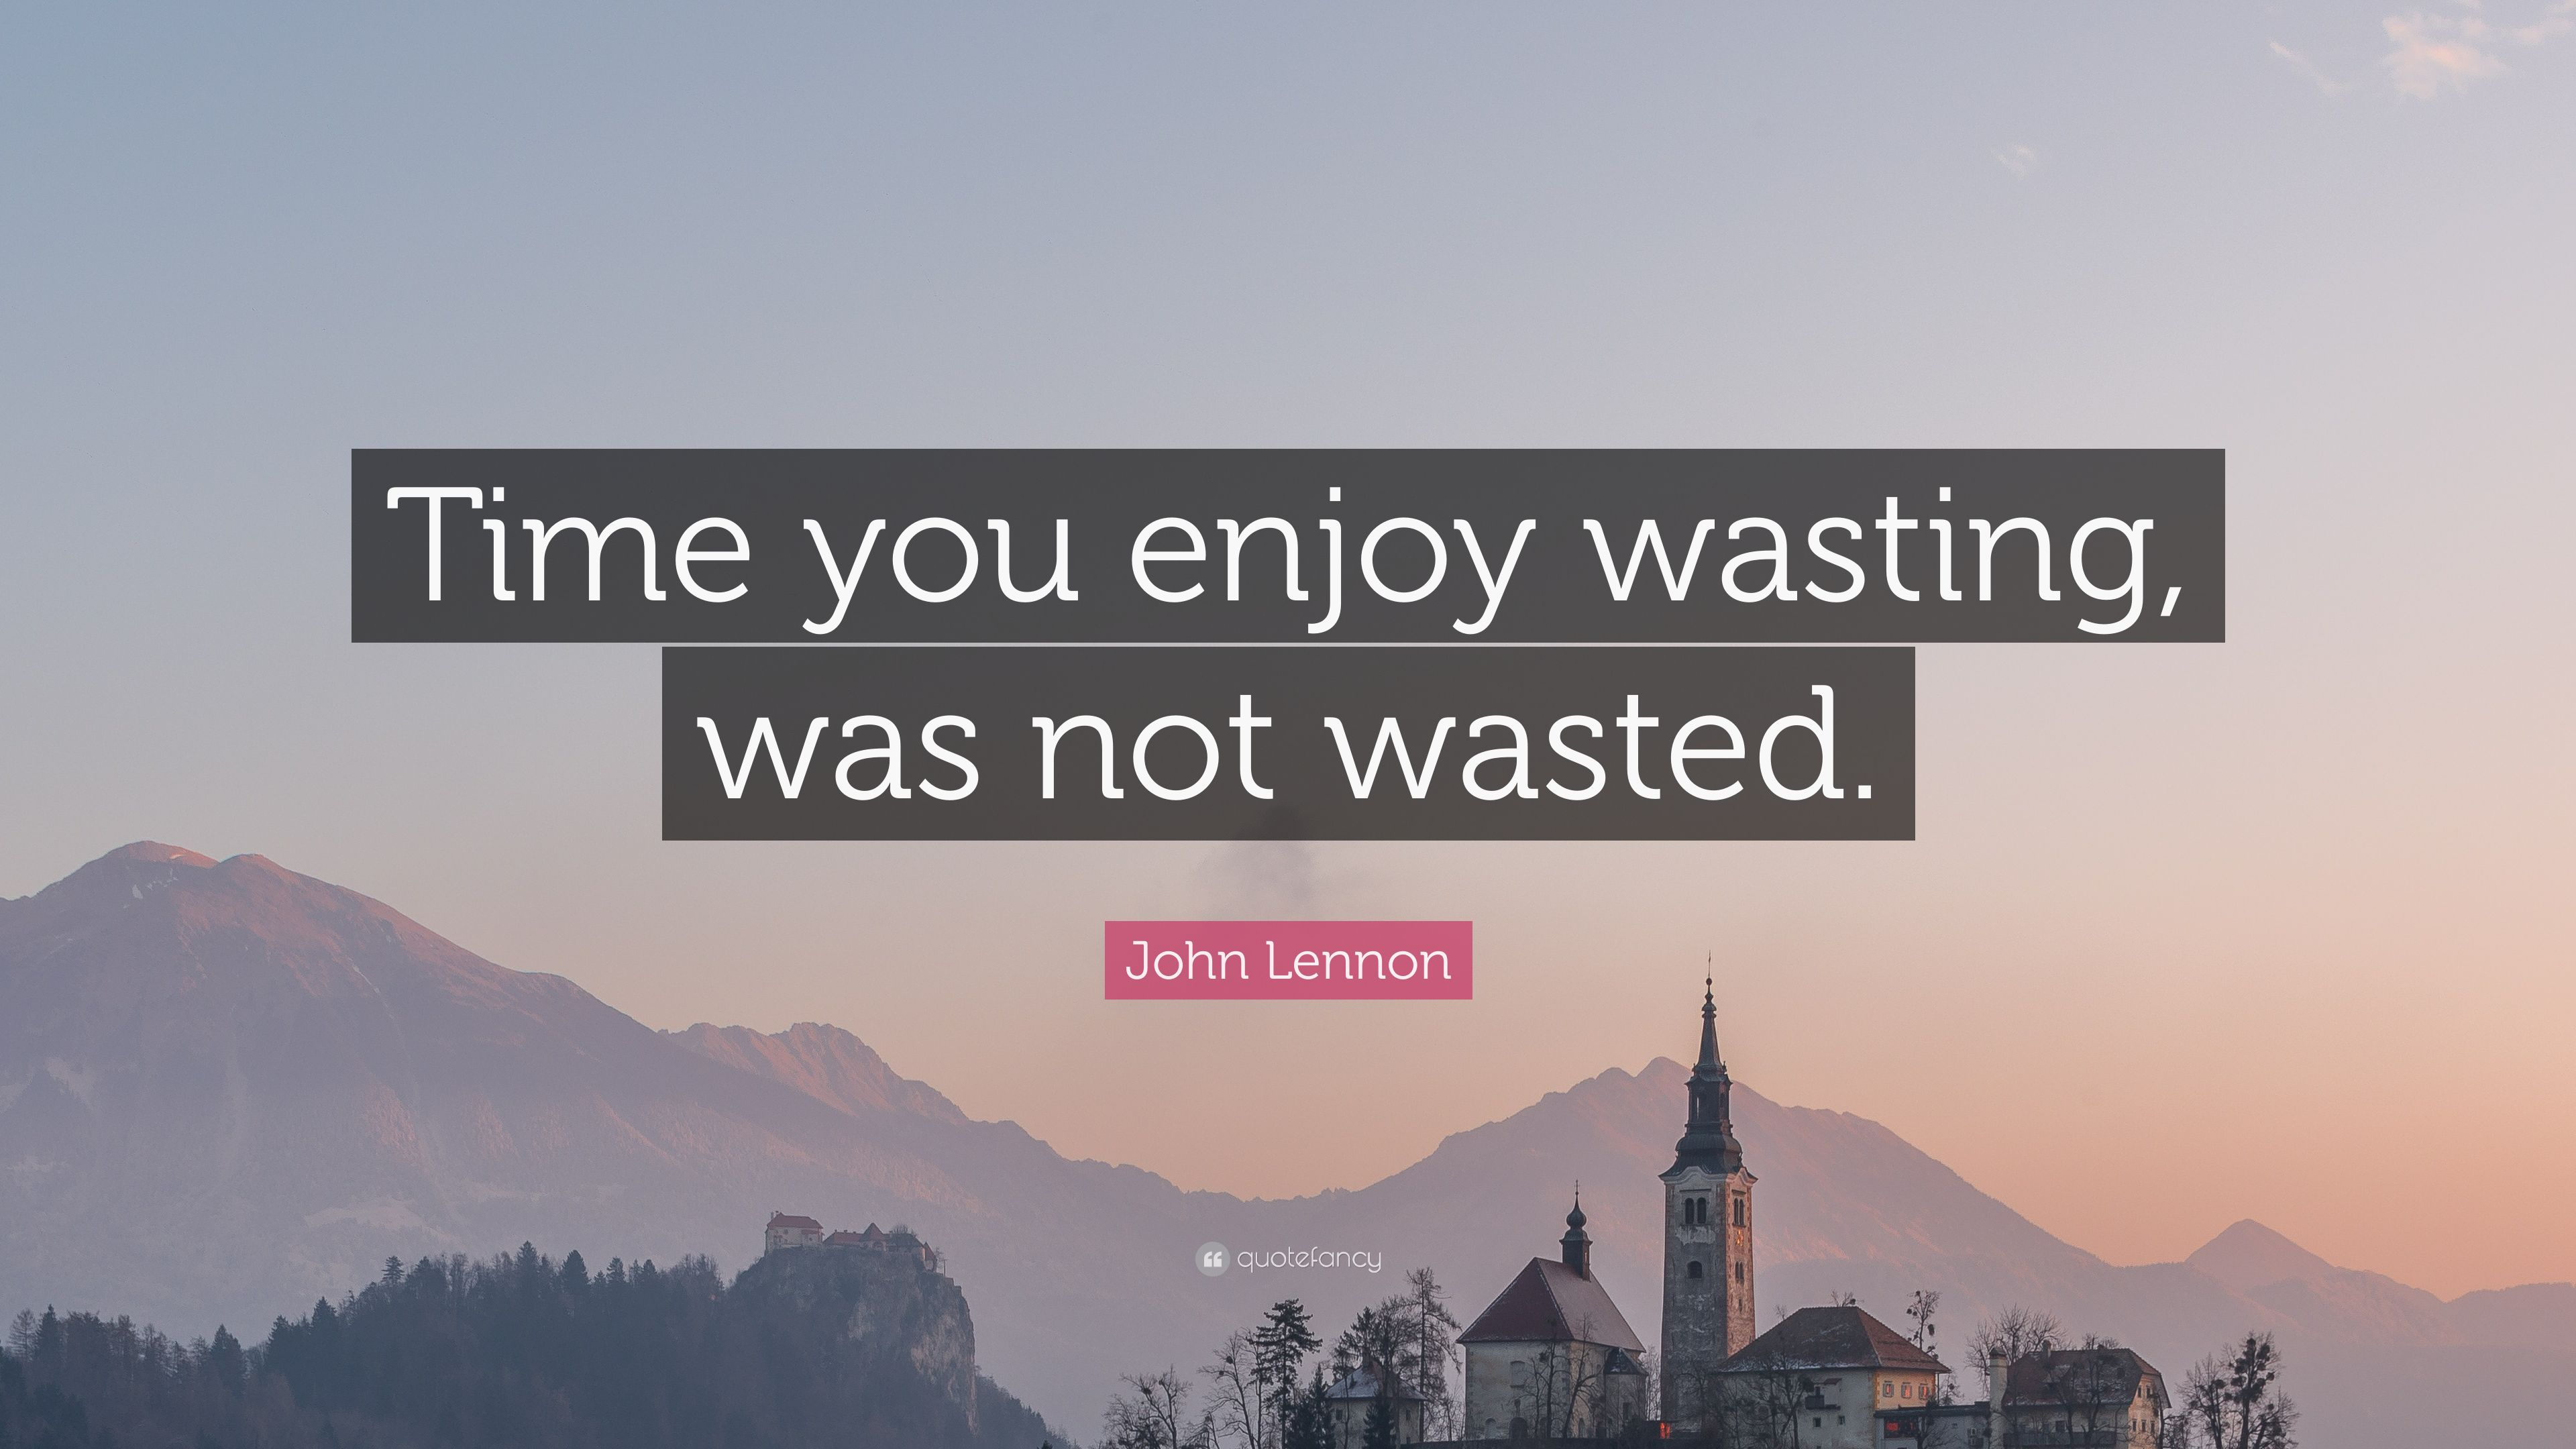 Wasting Time Quotes Wallpaper John Lennon Quote Time You Enjoy Wasting Was Not Wasted